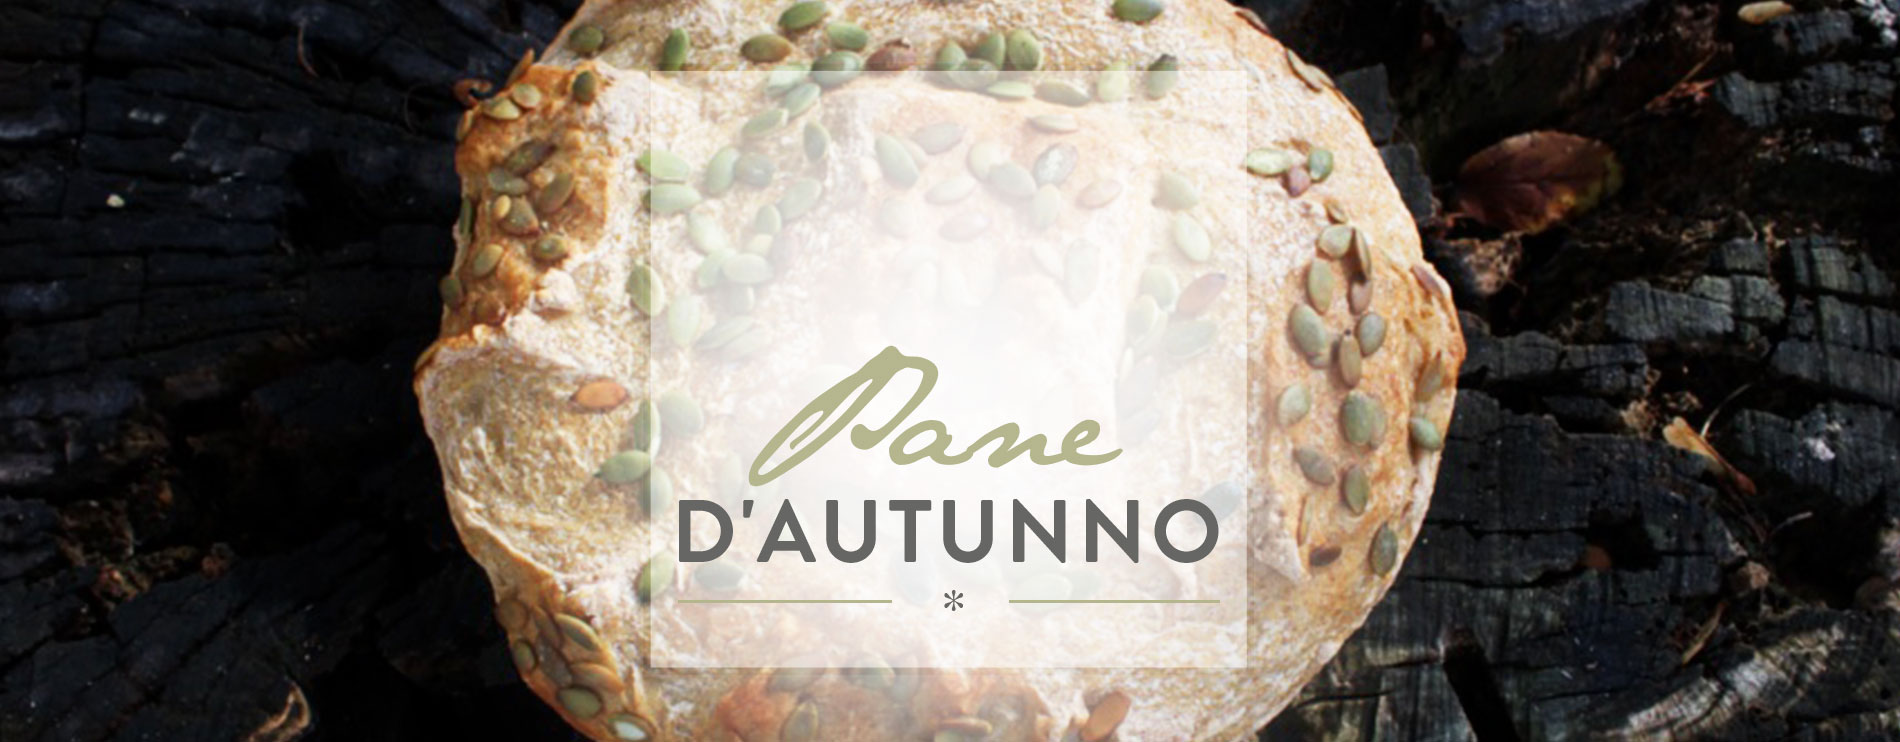 Pane-autunno-header